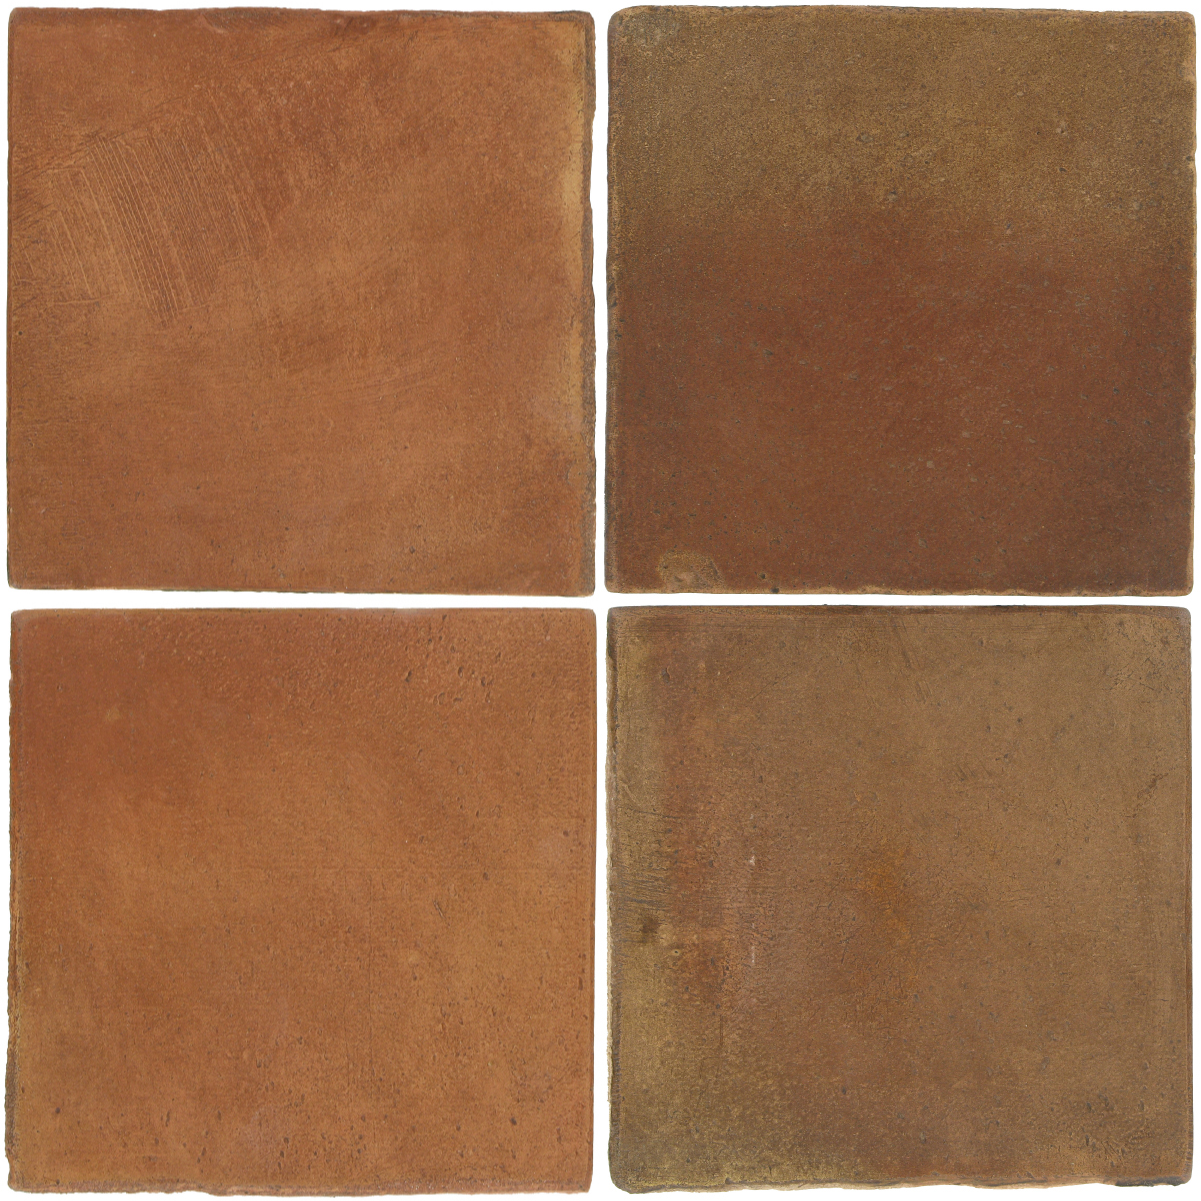 Pedralbes Antique Terracotta  2 Color Combinations  OHS-PSTR Traditional + OHS-PSCM Camel Brown